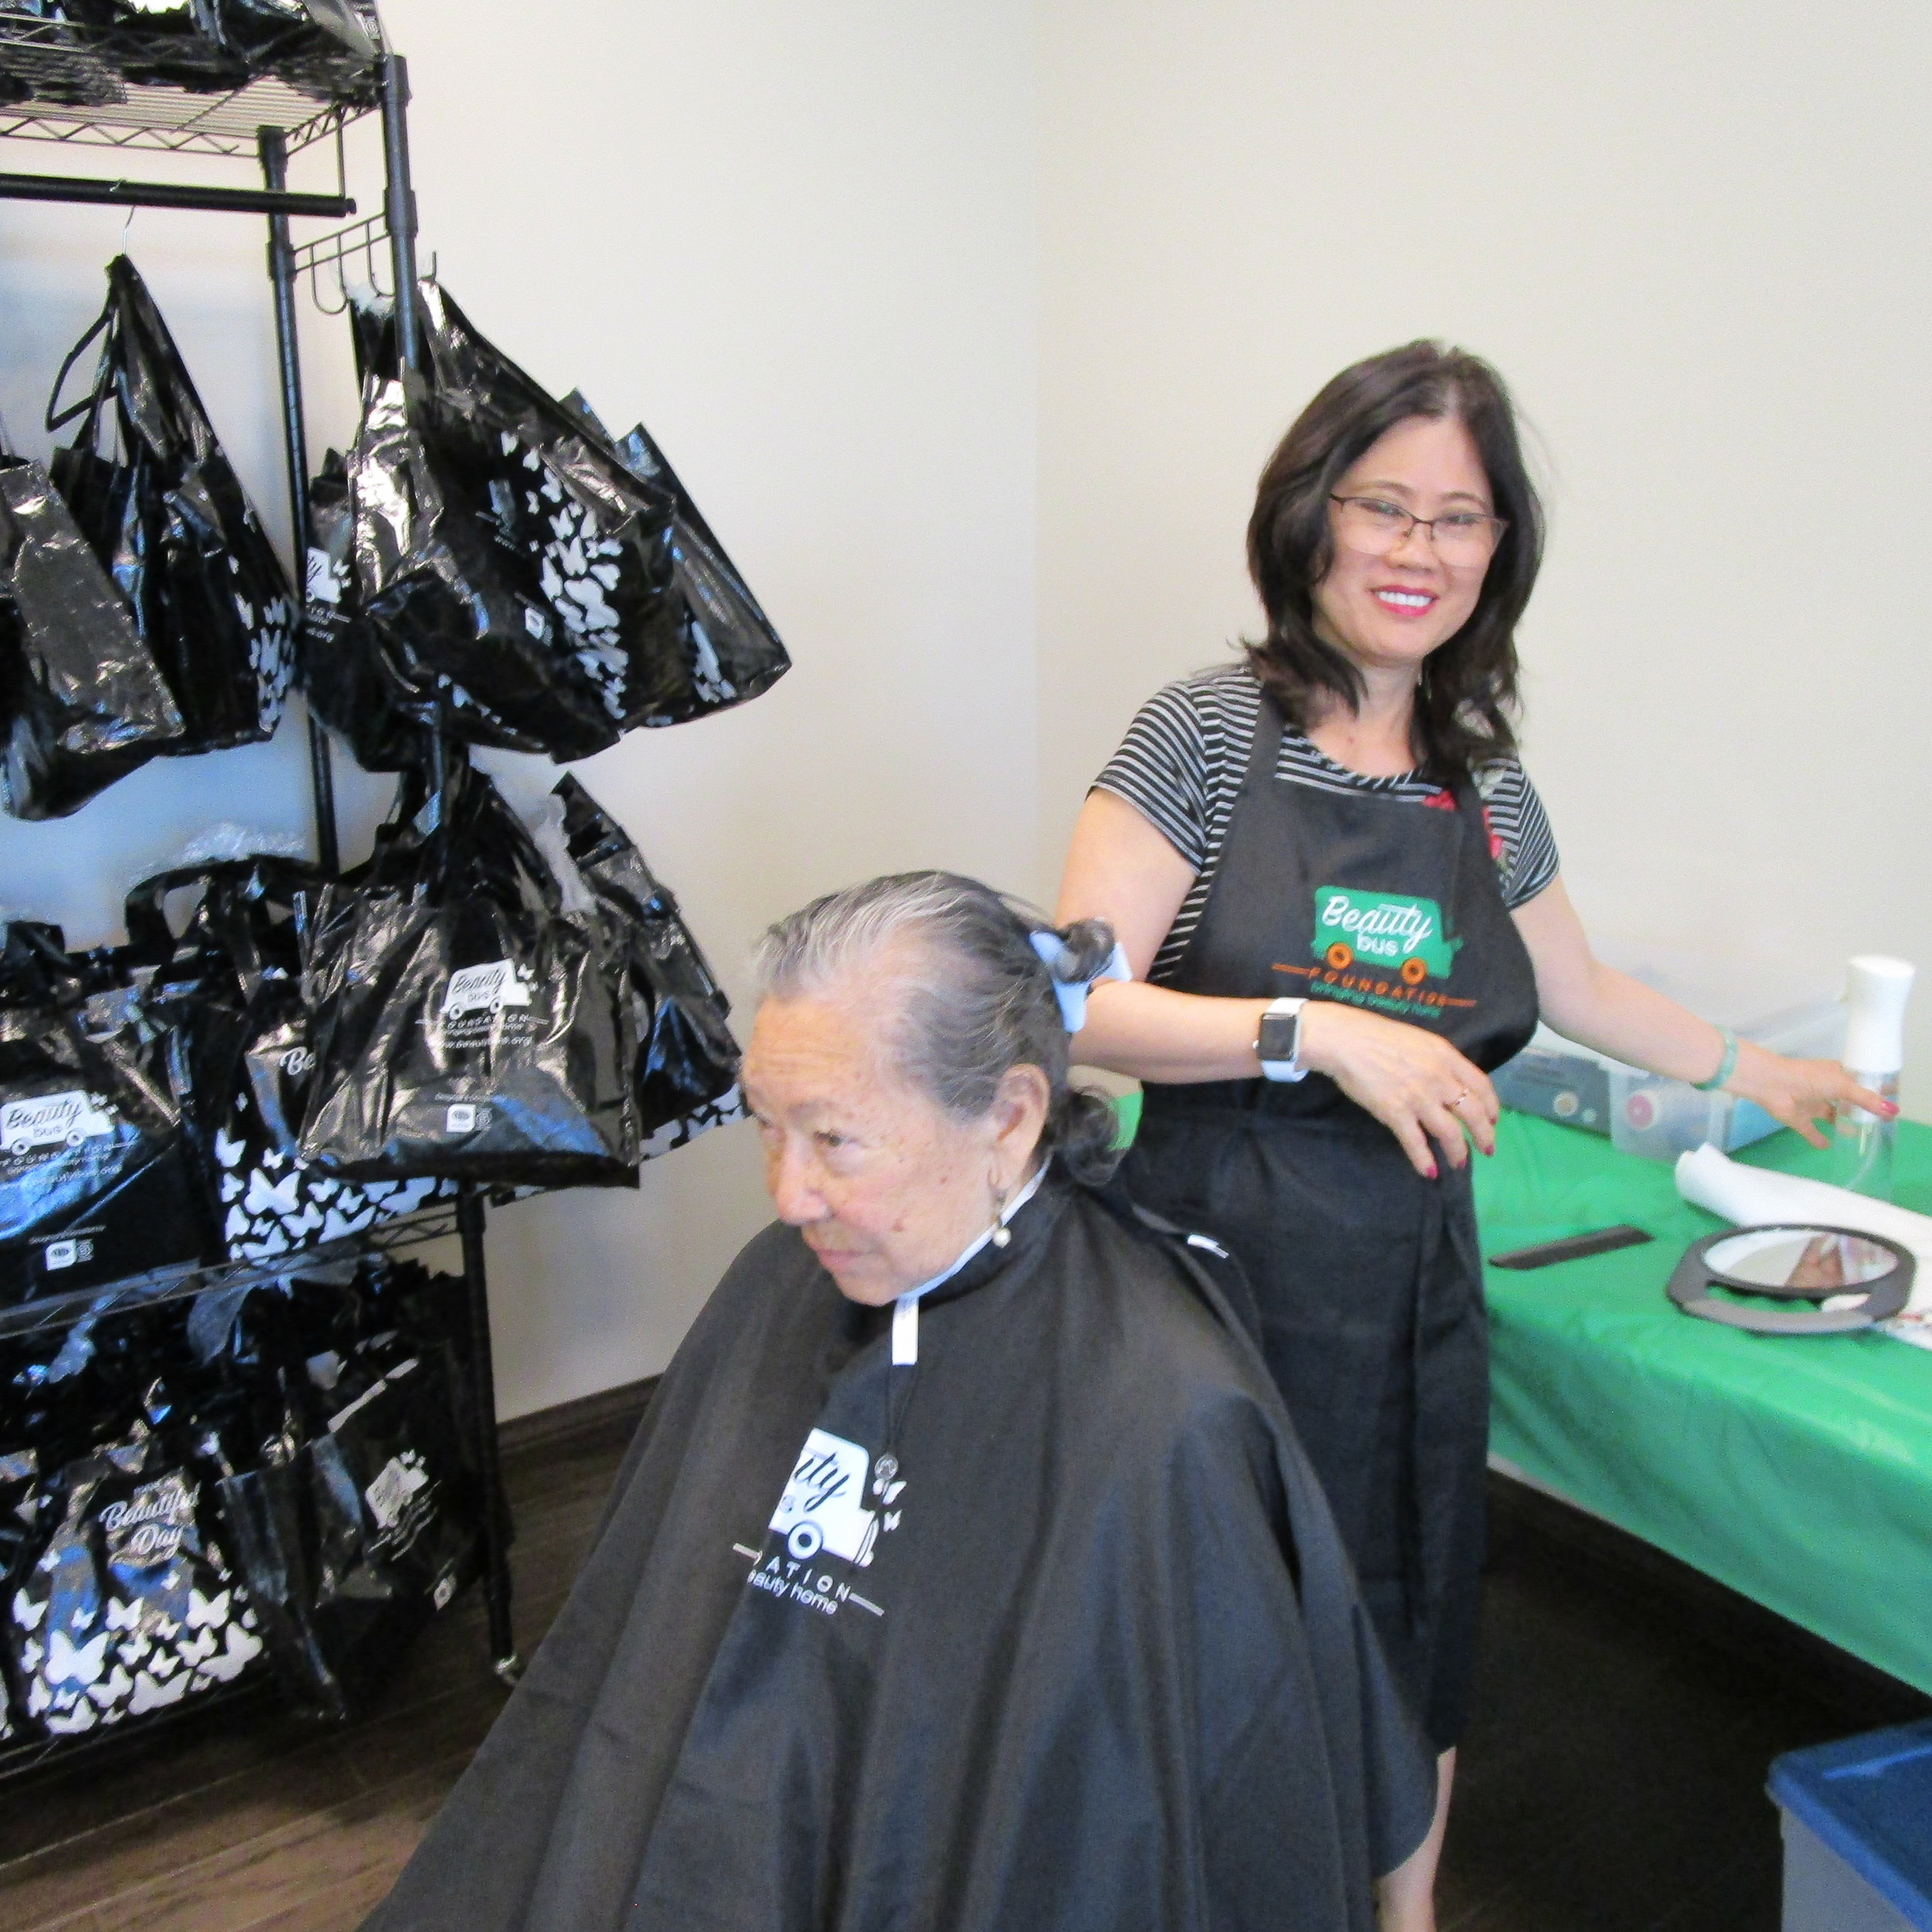 Salon Senior Scv Senior Center Pop Up Salon Beauty Bus